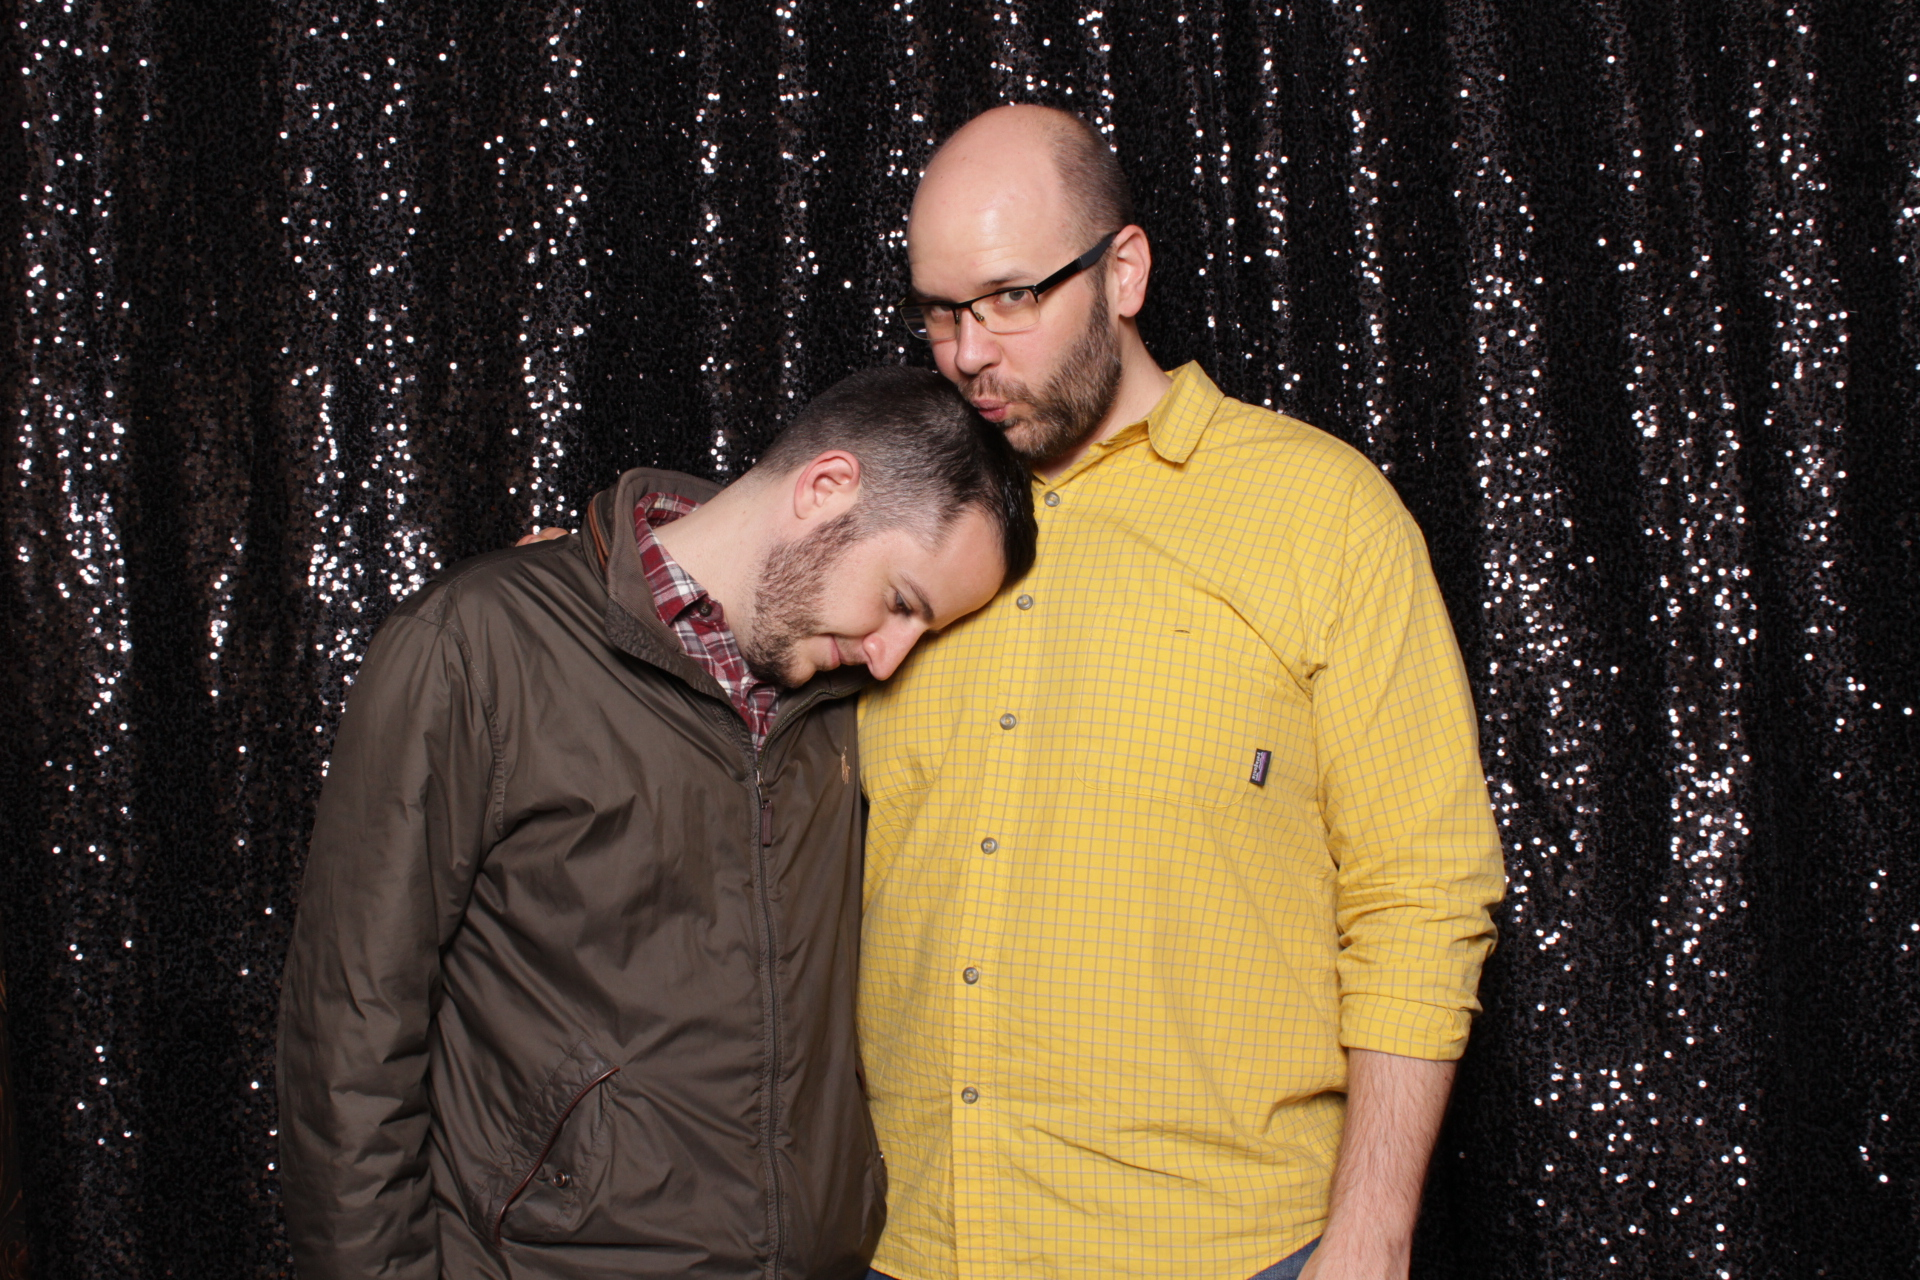 Minneapolis_birthday_party_photo_booth_rentals (13).jpg